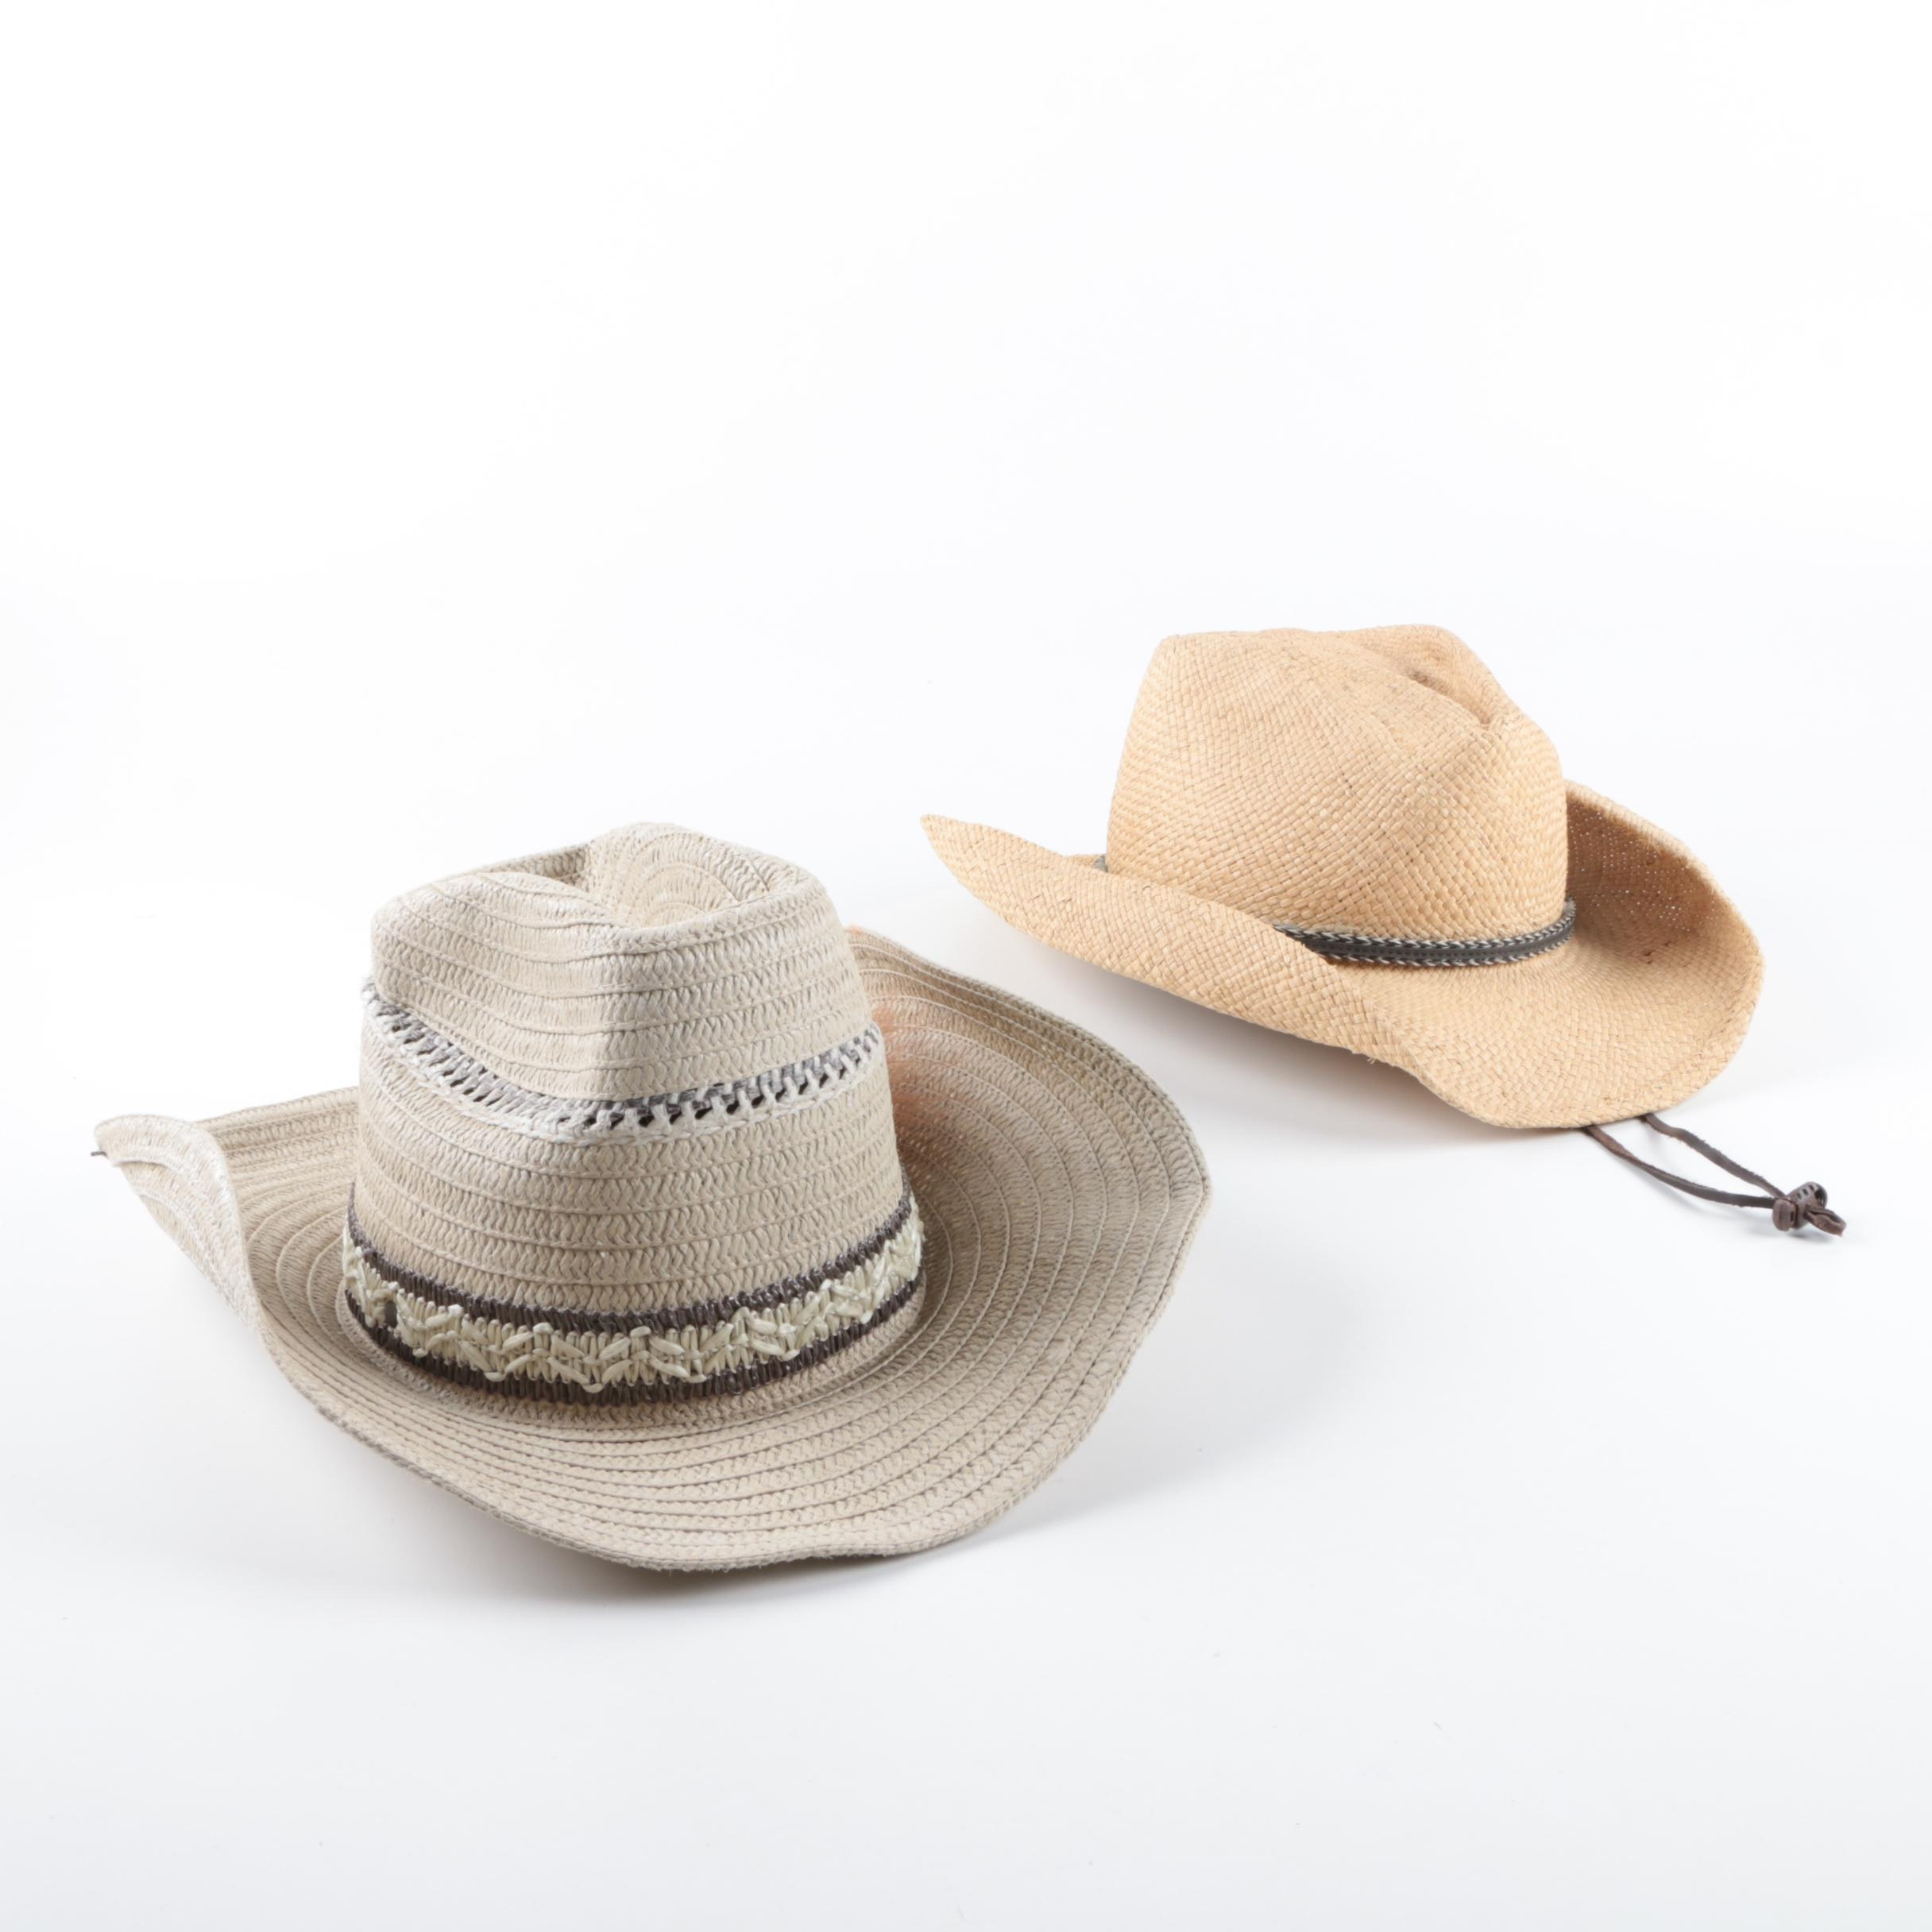 Woven Rancher Hats Including Bullhide